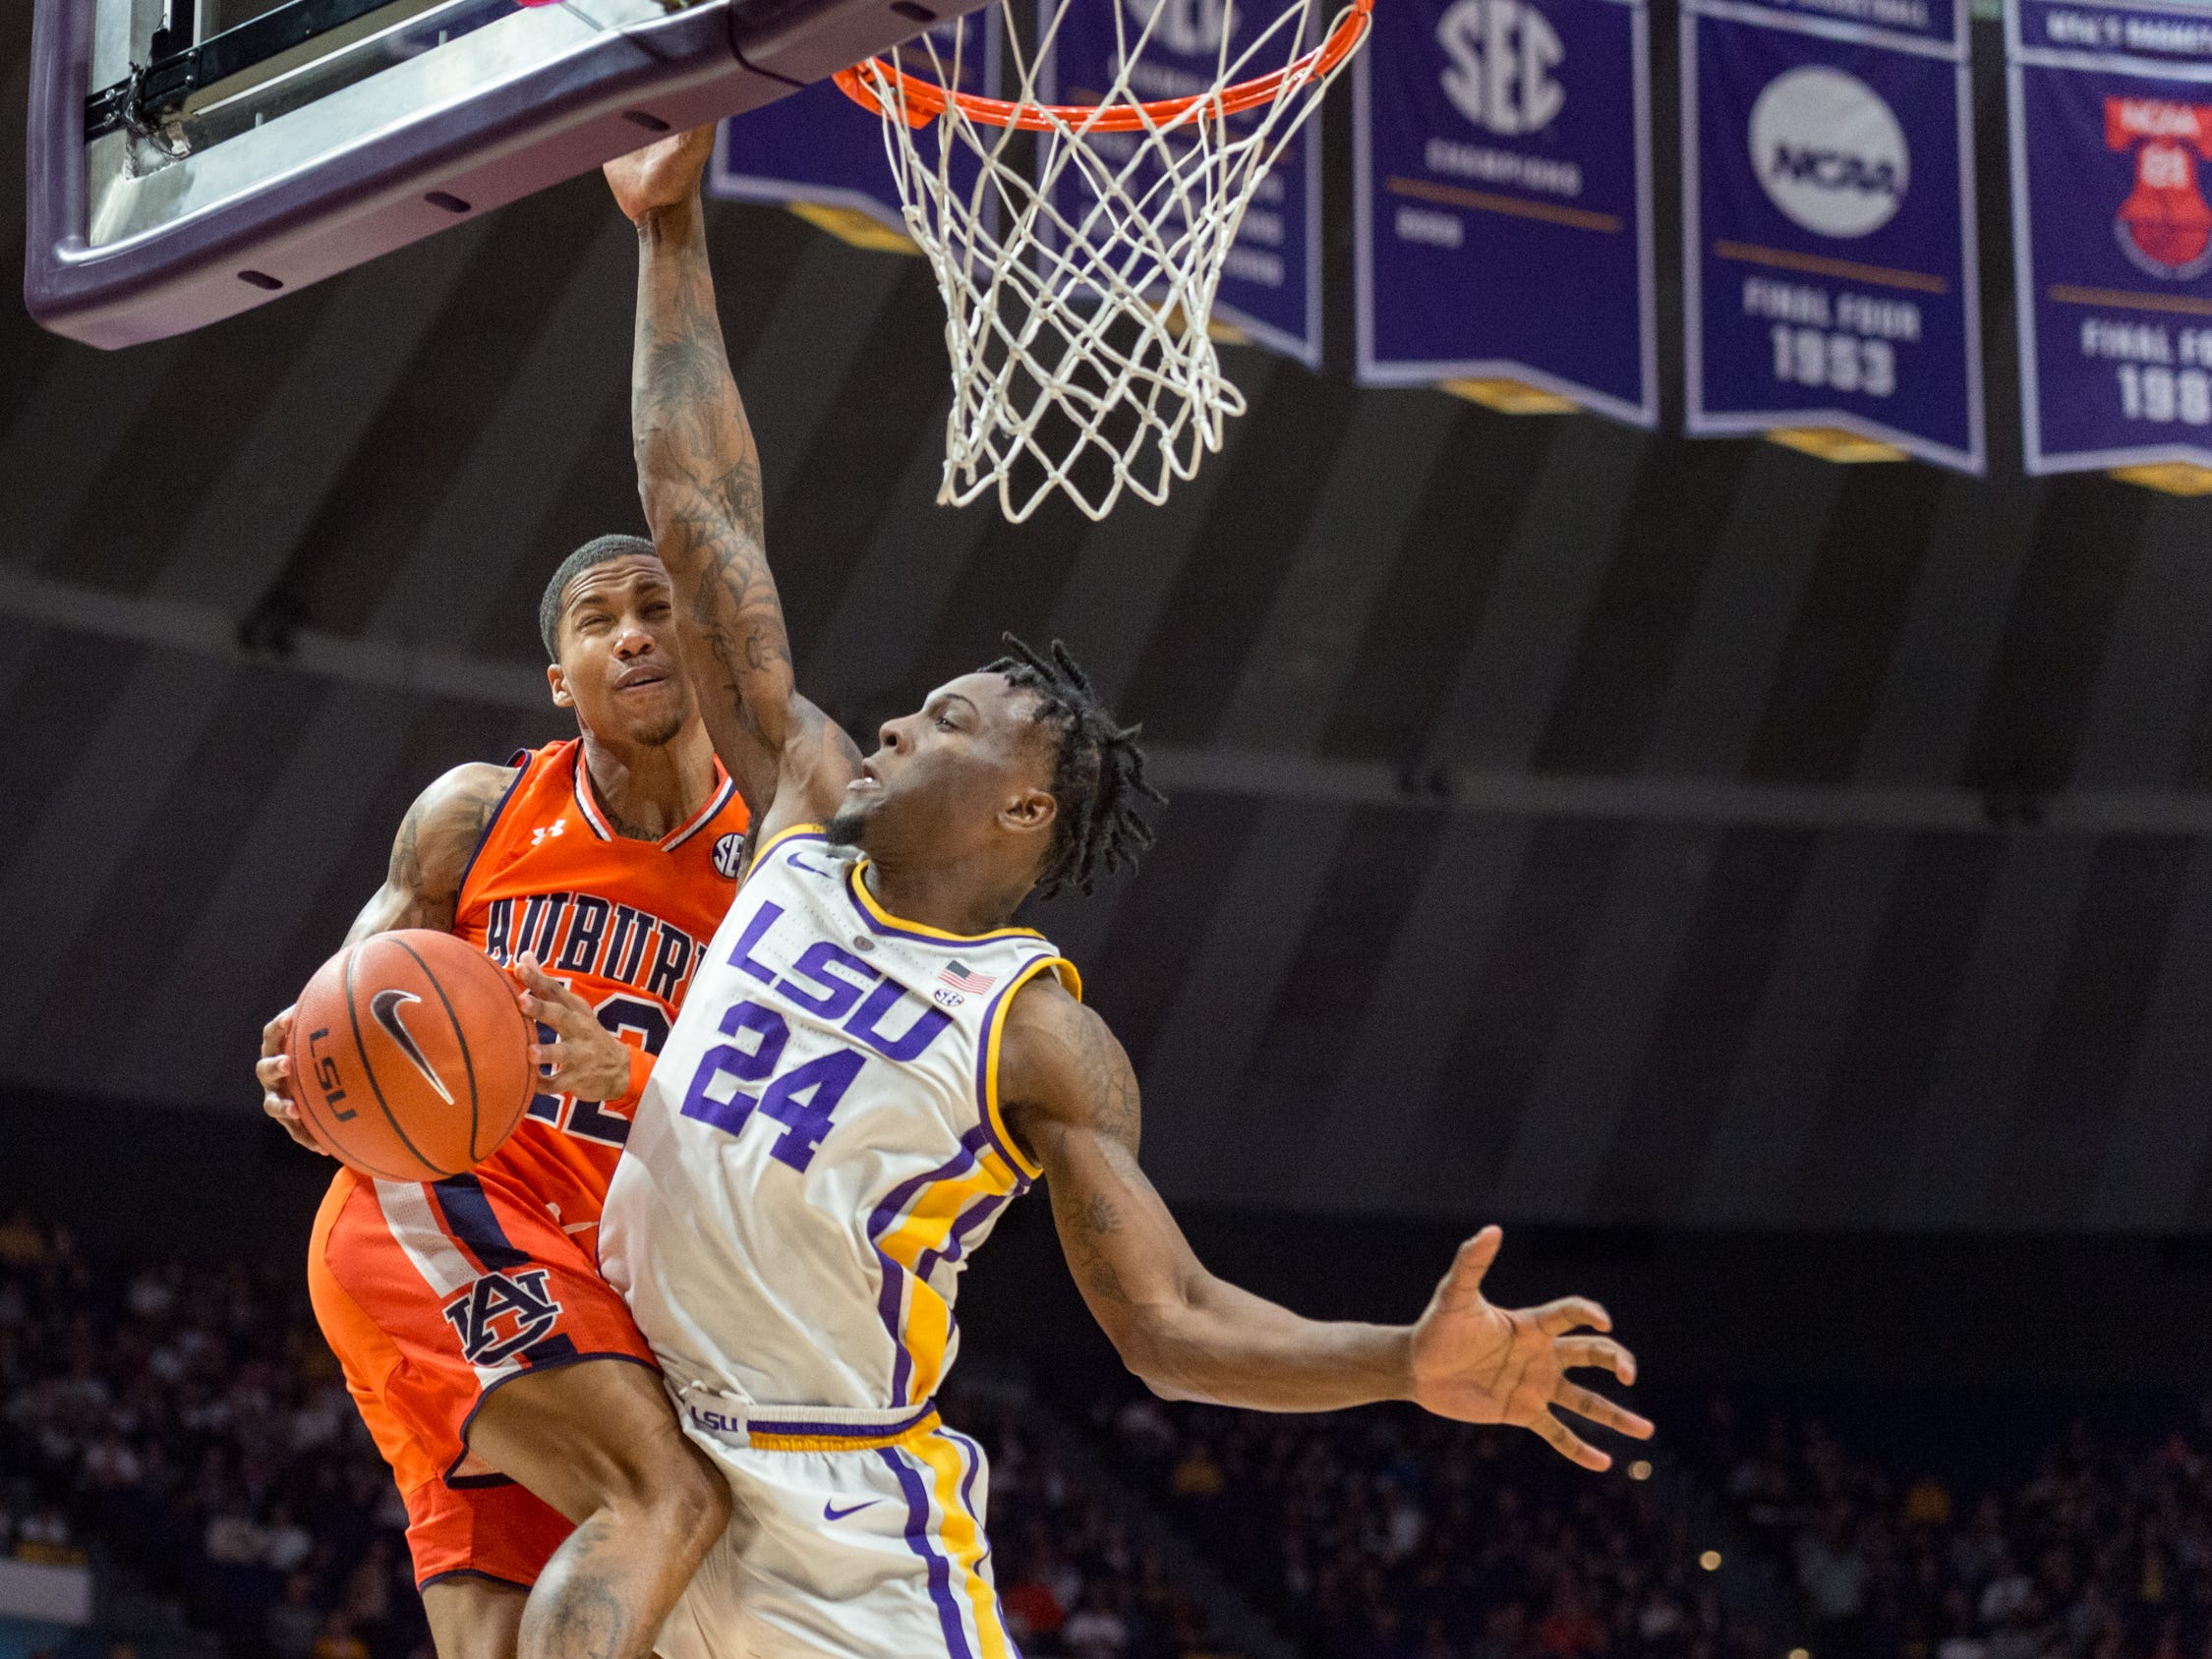 J'Von McCormick takes it to the basket as Emmitt Williams defends as the LSU Tigers take down the Auburn Tigers 83-78. Saturday, Feb. 9, 2019.